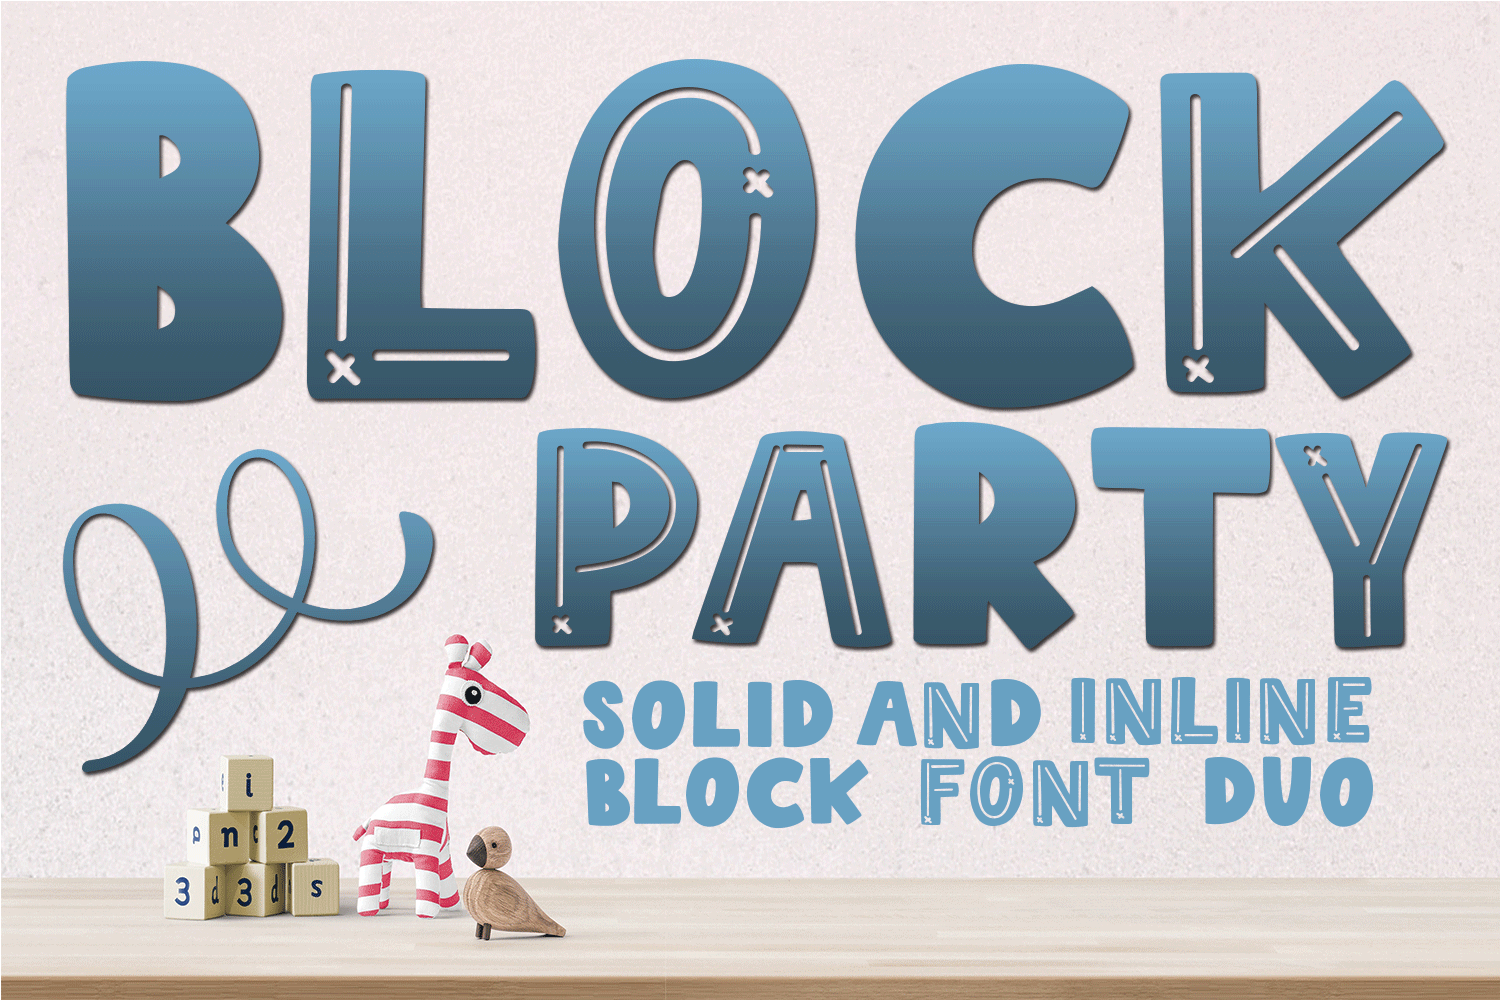 Block Party - Solid and Inline Font Duo example image 1